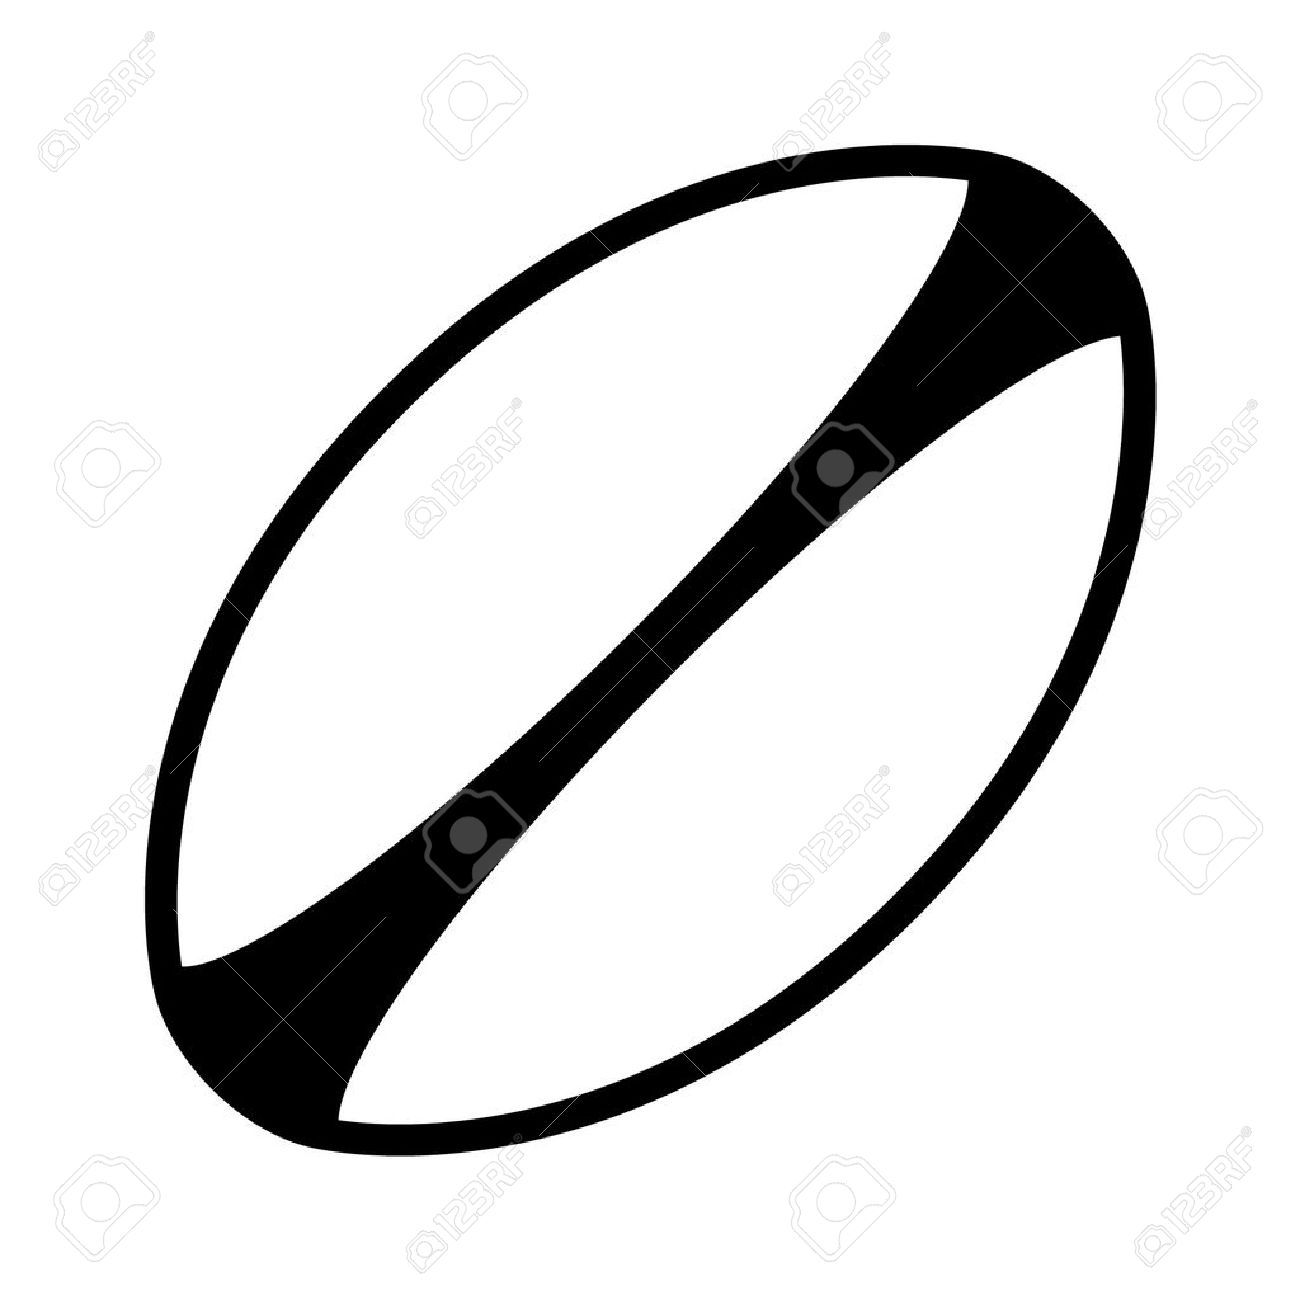 Clipart rugby ball banner library Rugby ball clipart black and white 5 » Clipart Portal banner library